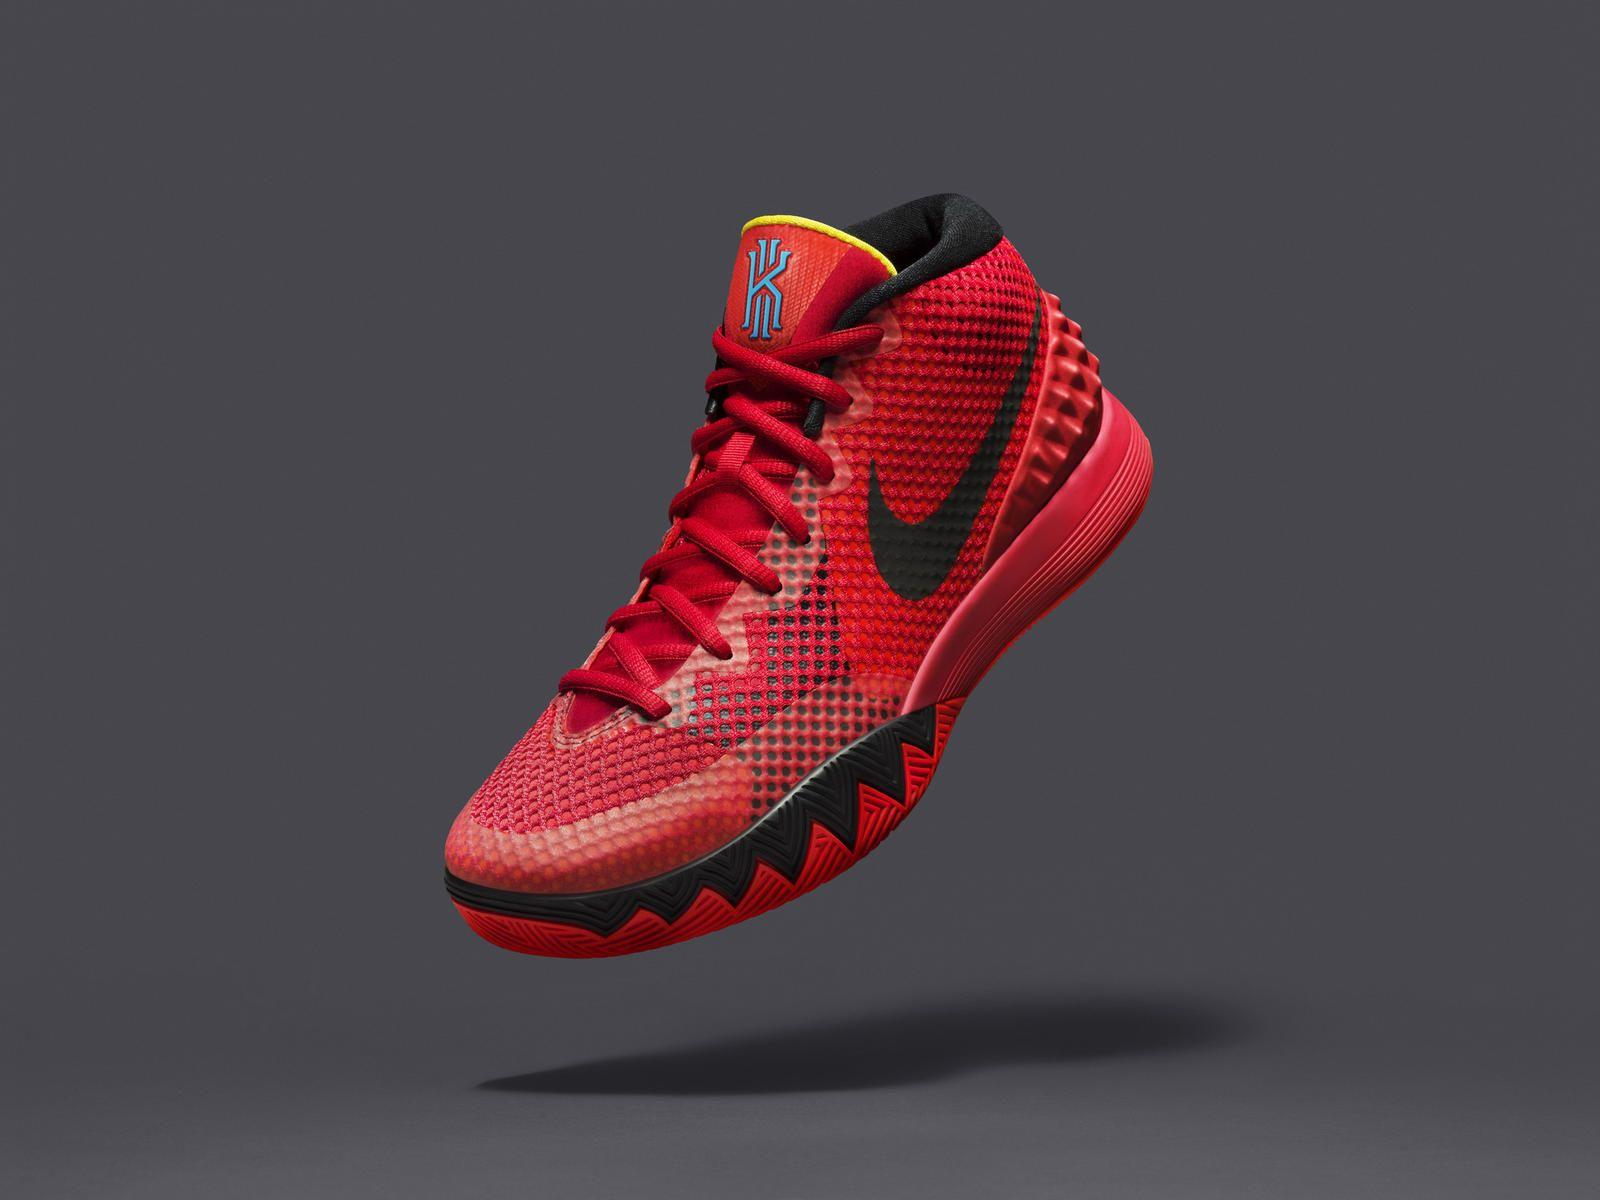 Kyrie Irving Shoes Wallpapers - Wallpaper CaveKyrie Irving Shoes